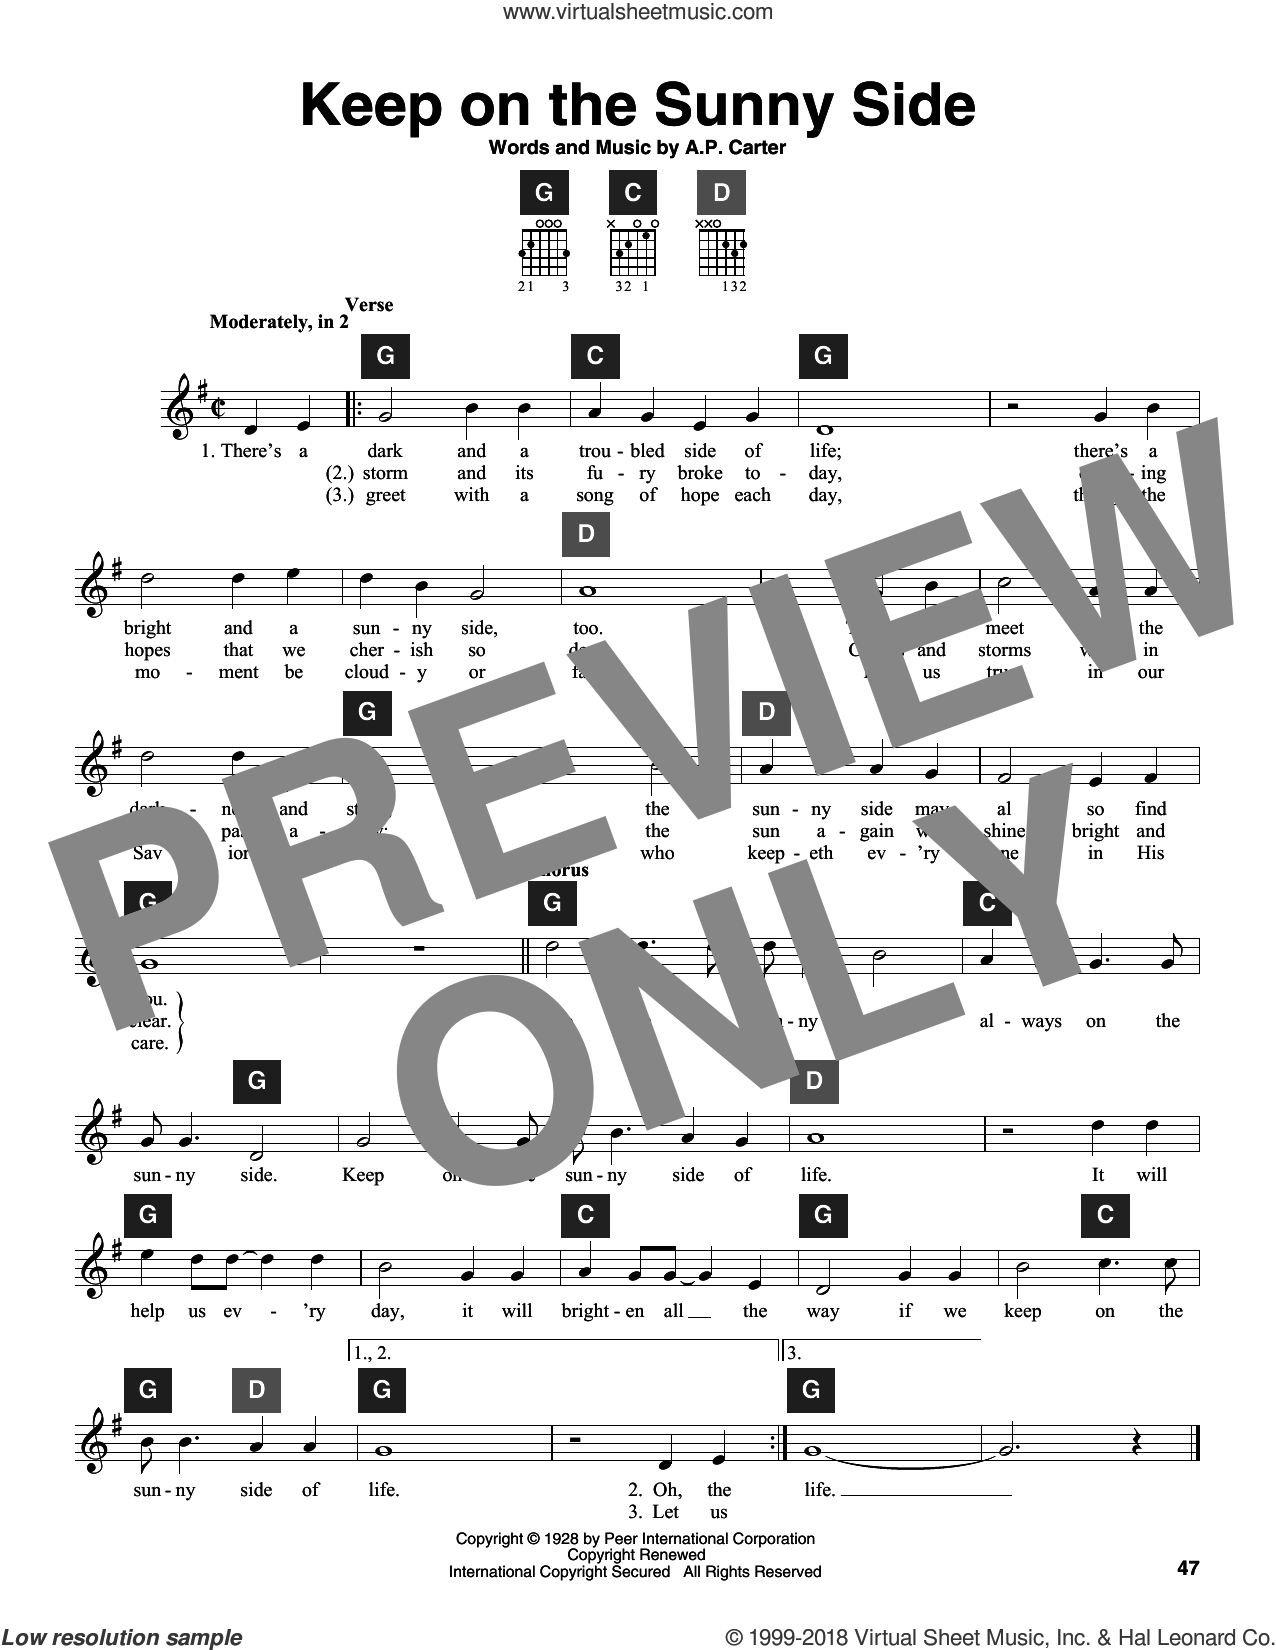 Keep On The Sunny Side sheet music for guitar solo (ChordBuddy system) by The Carter Family, Travis Perry and A.P. Carter, intermediate guitar (ChordBuddy system)